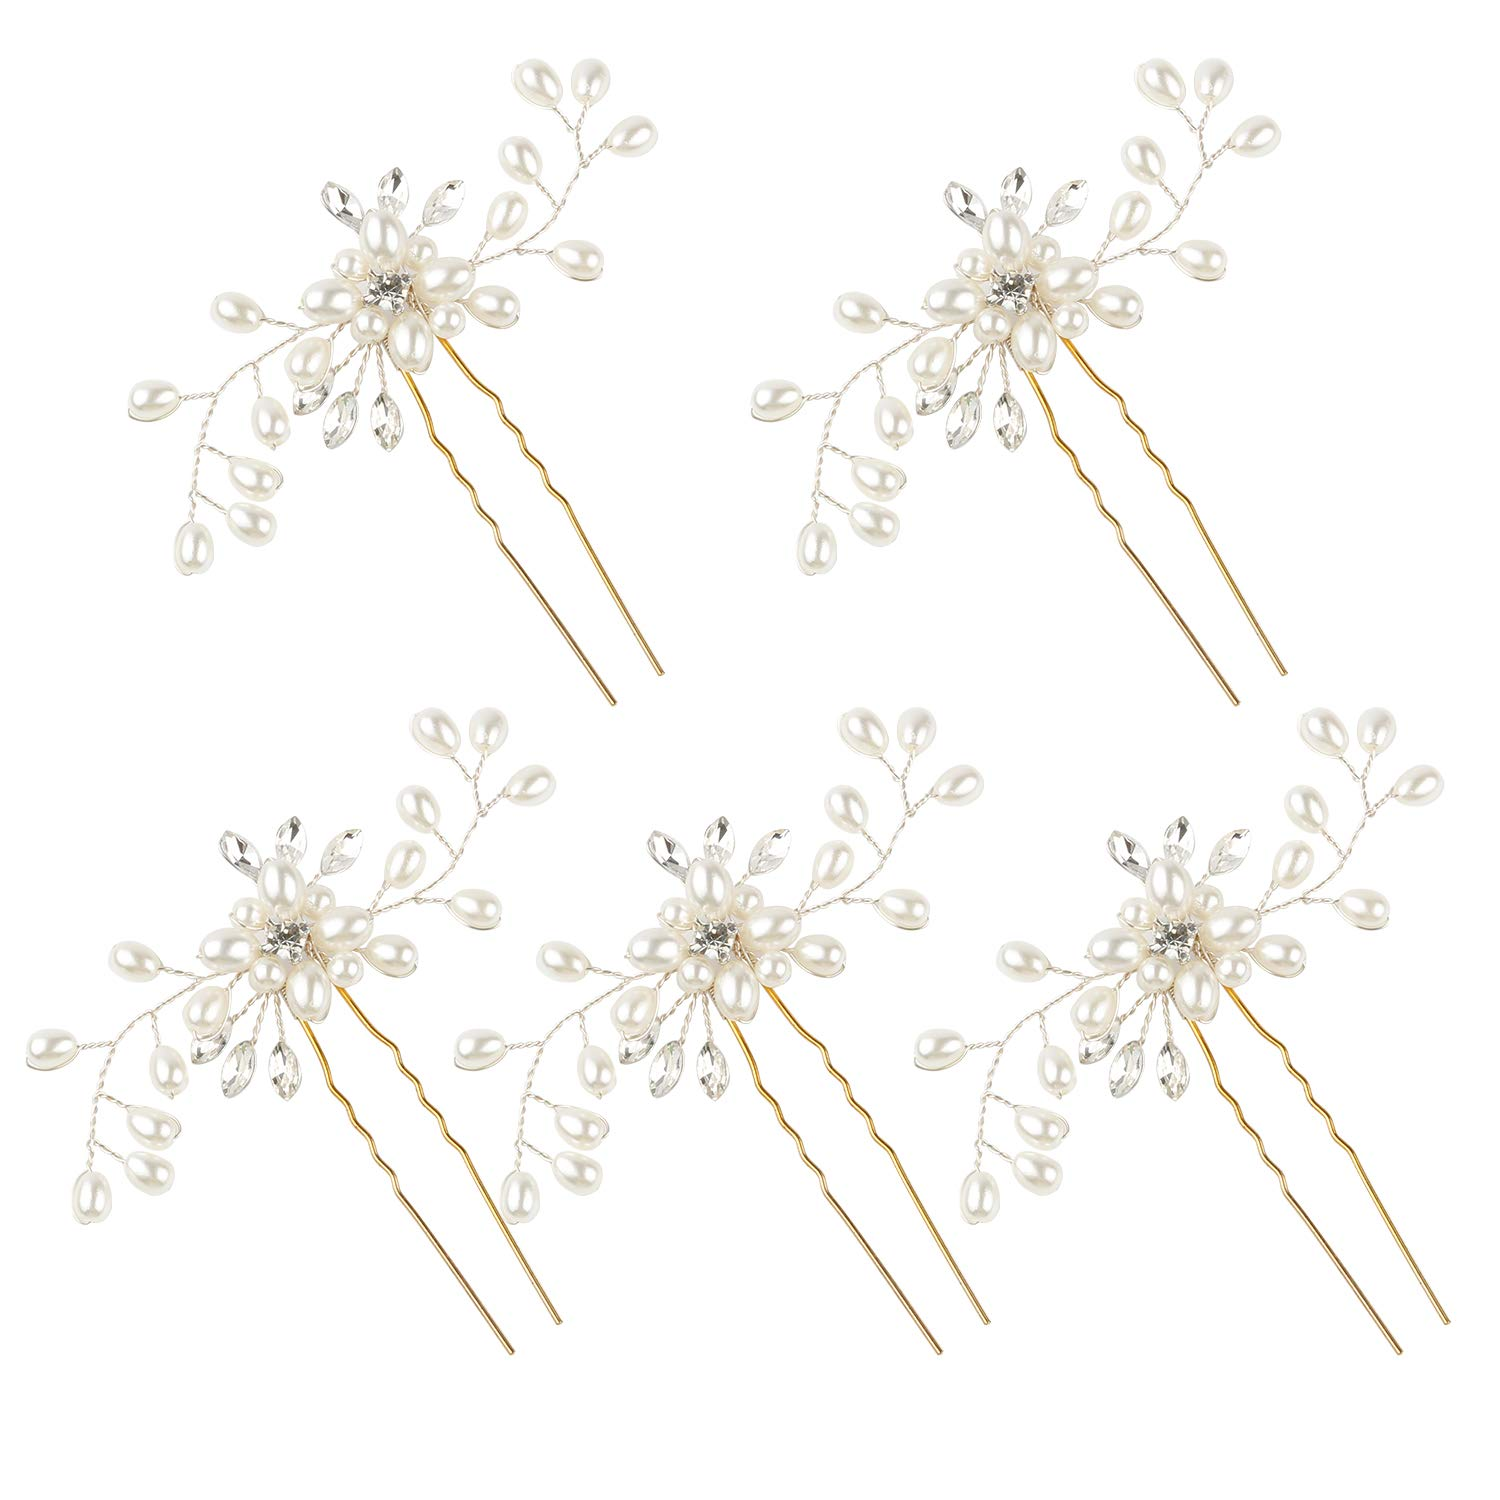 WBCBEC 5 Pack Wedding Bridal Pearl Flower Crystal Hair Pins for Women and Girls